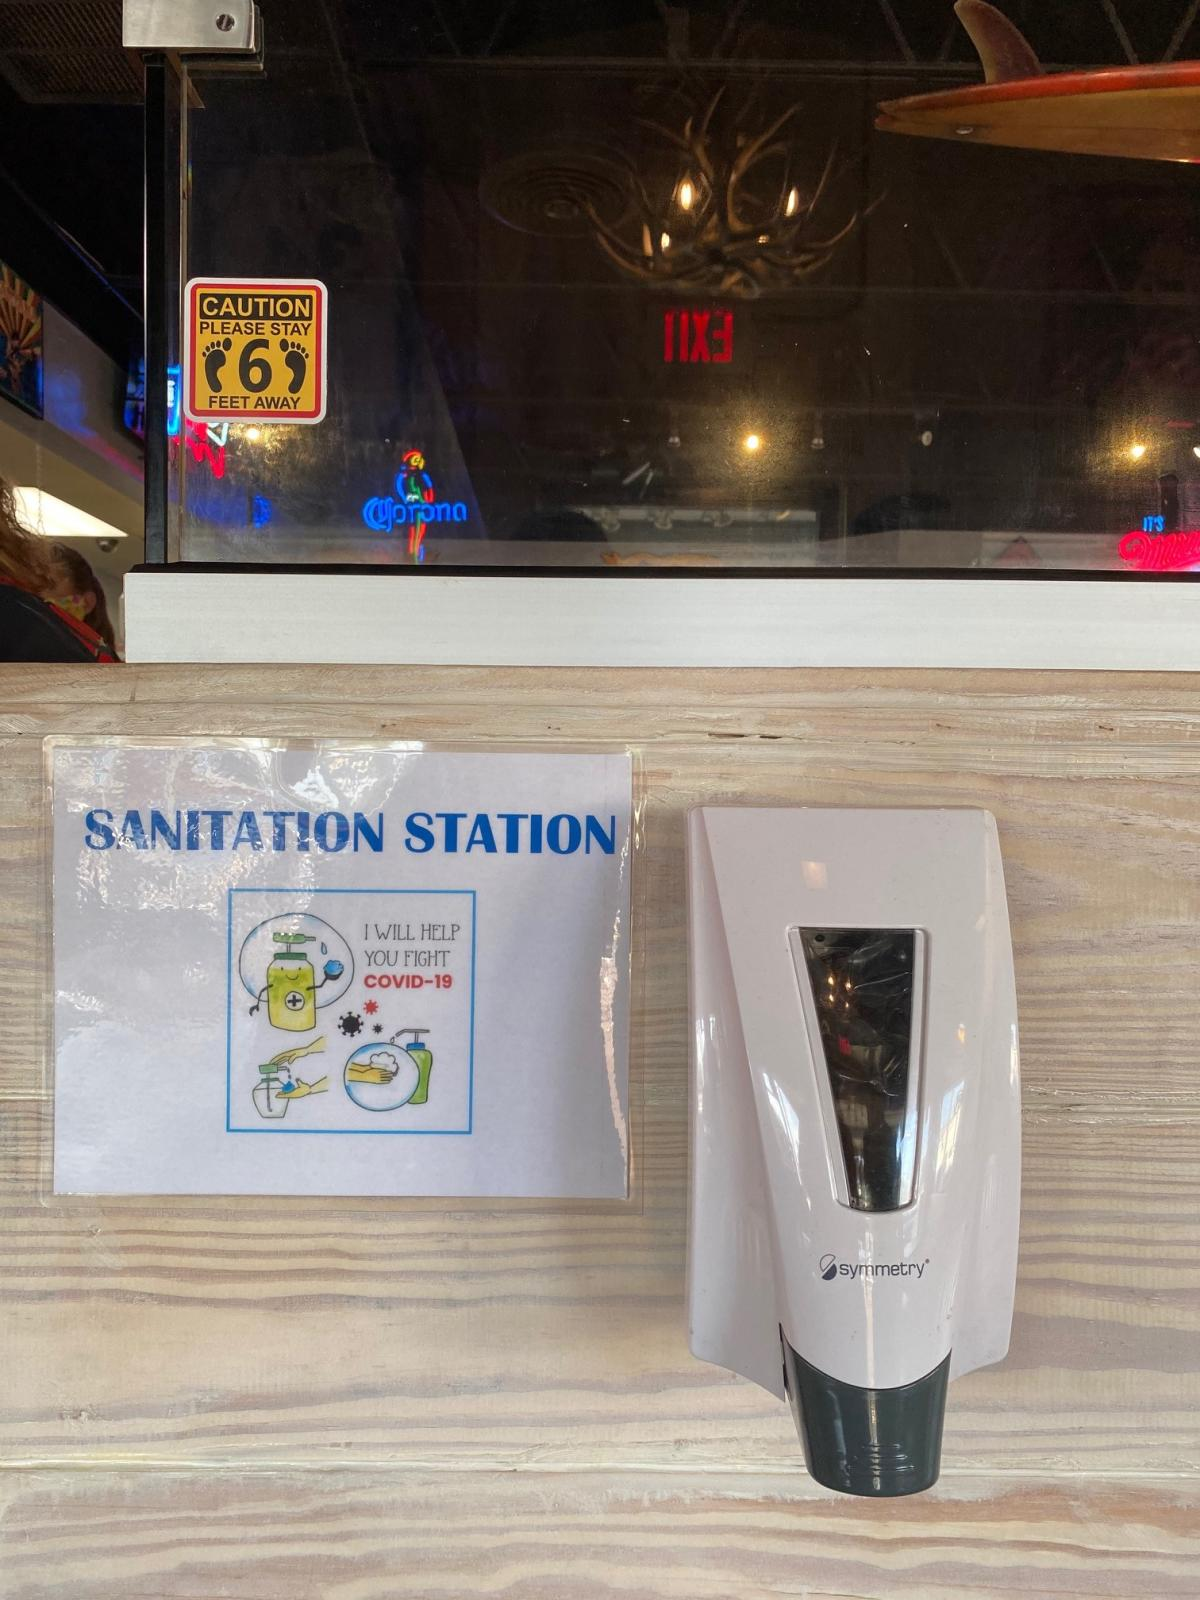 A sanitation station at Daddio's restaurant helps people adhere to increased hygiene practices.